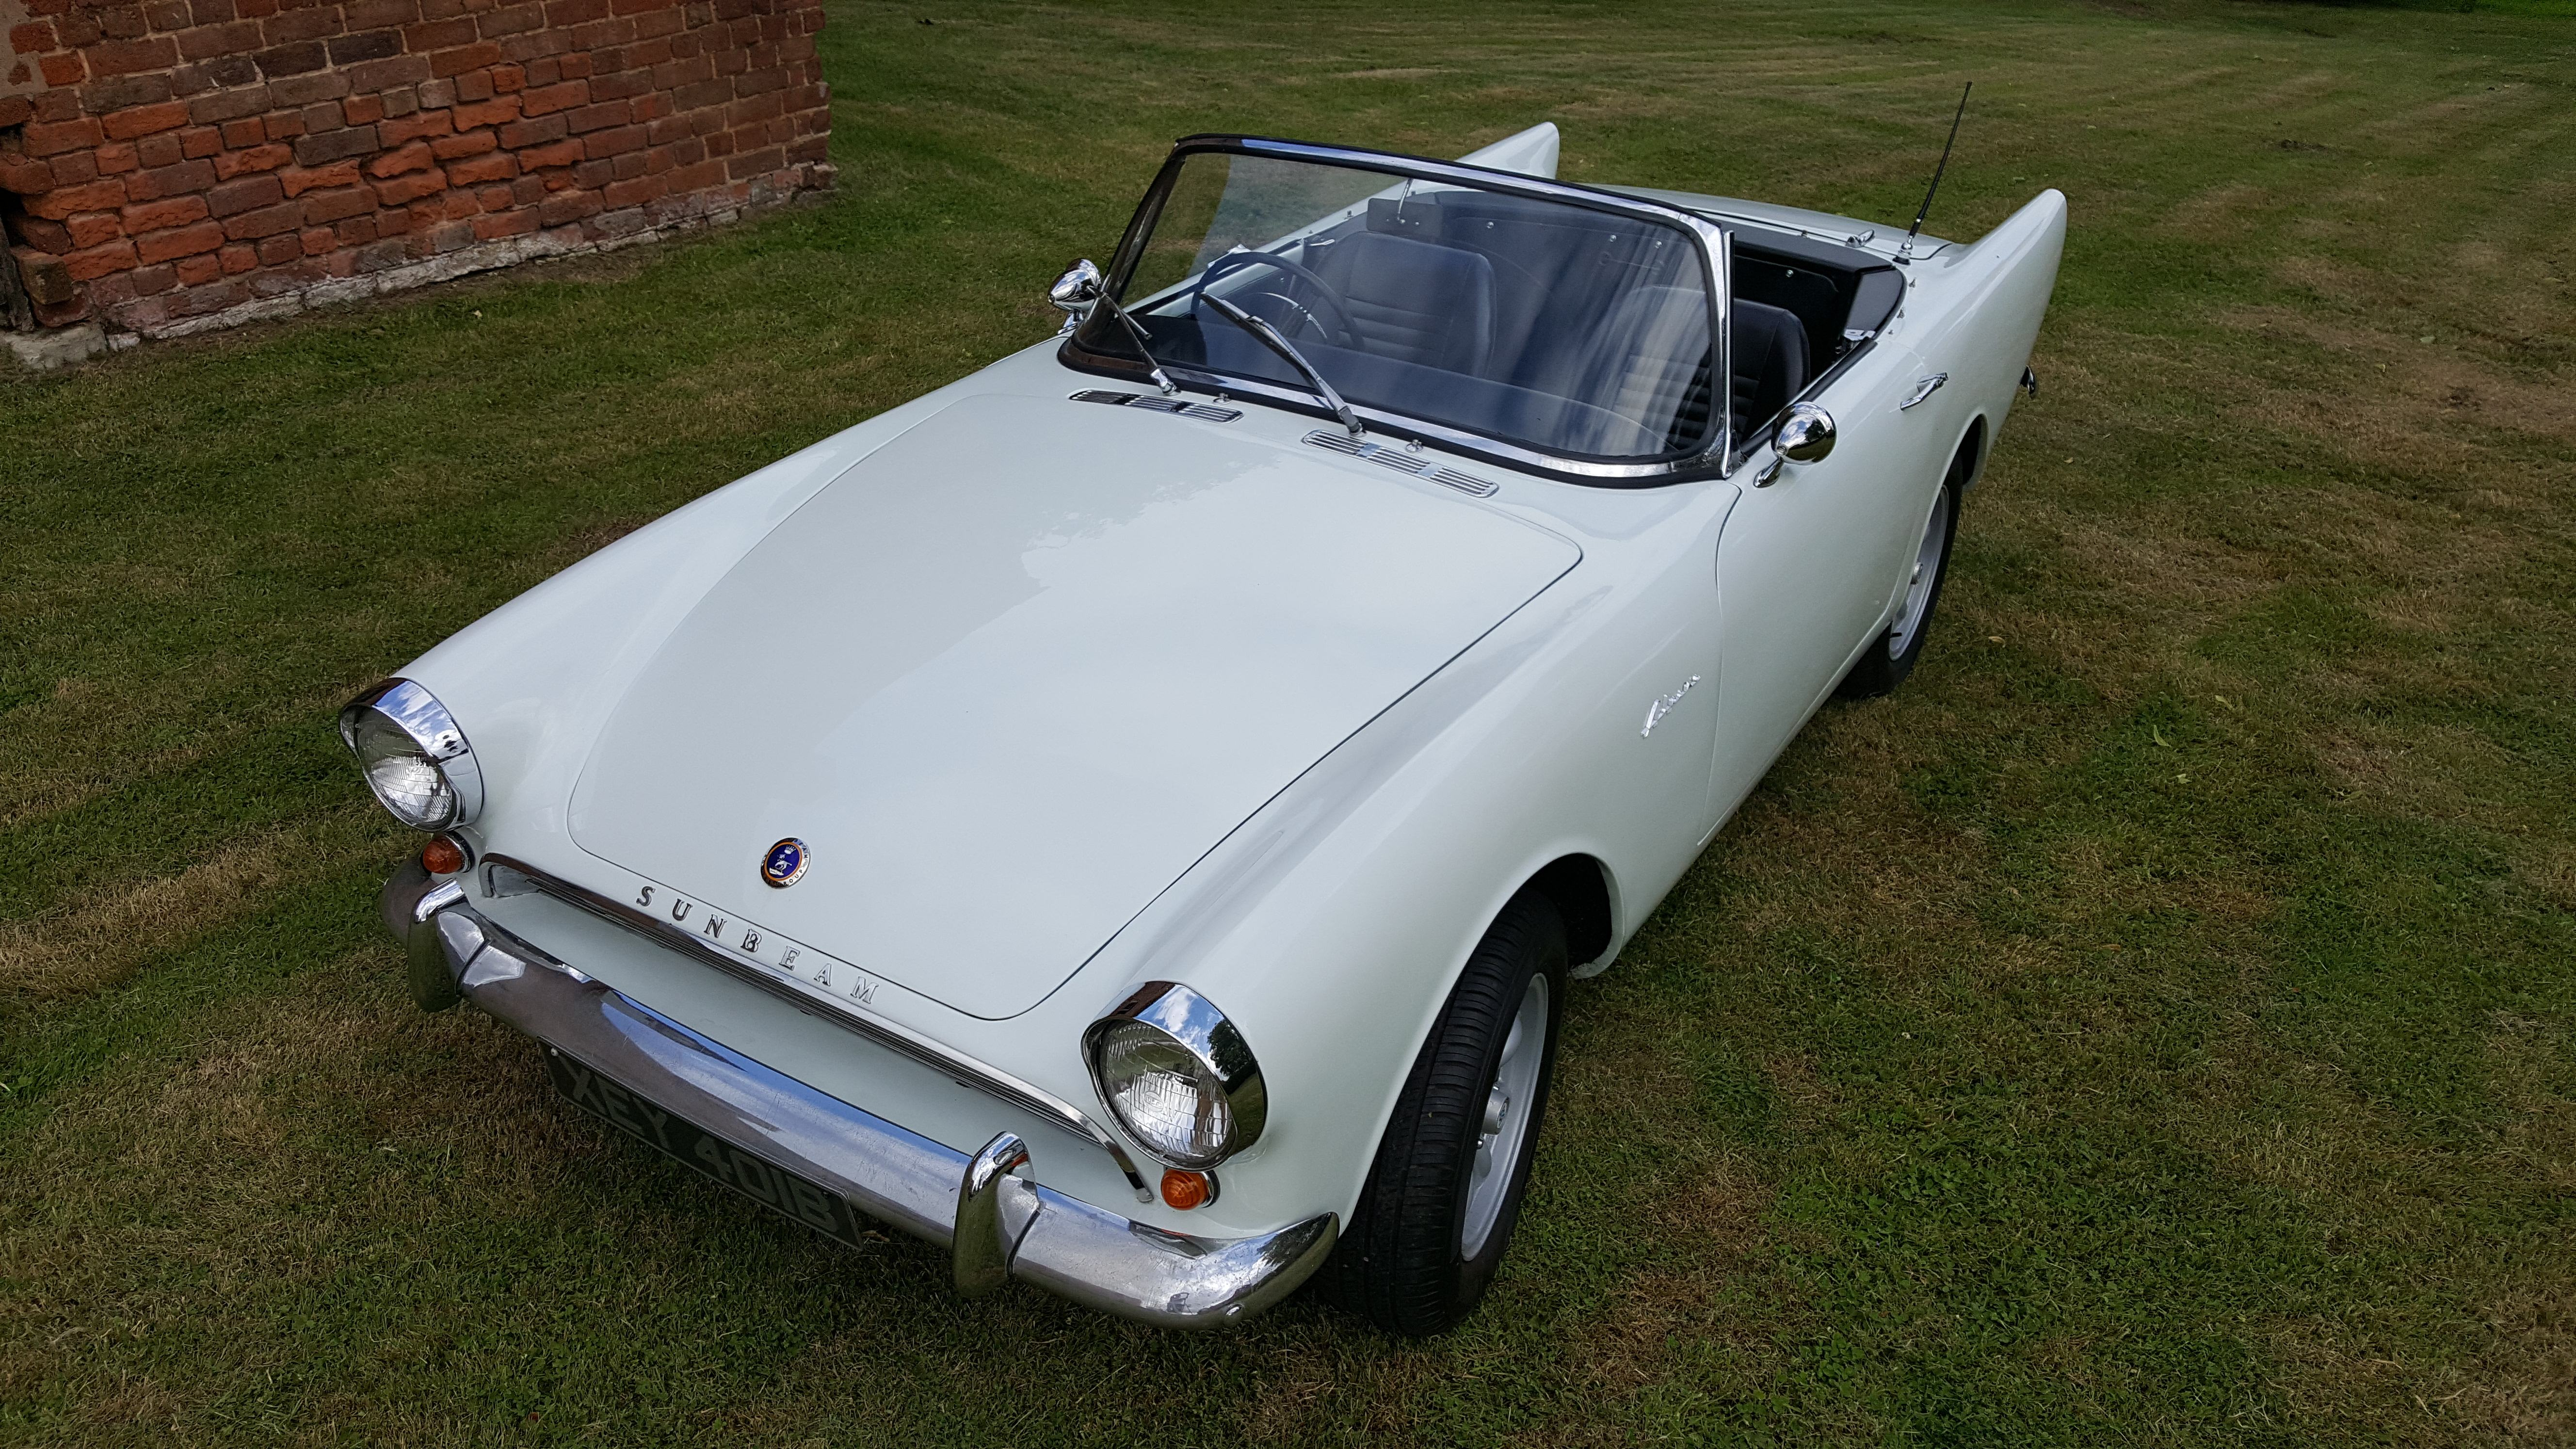 Cars For Sale Other Cars Sunbeam Alpine Series 2 1964